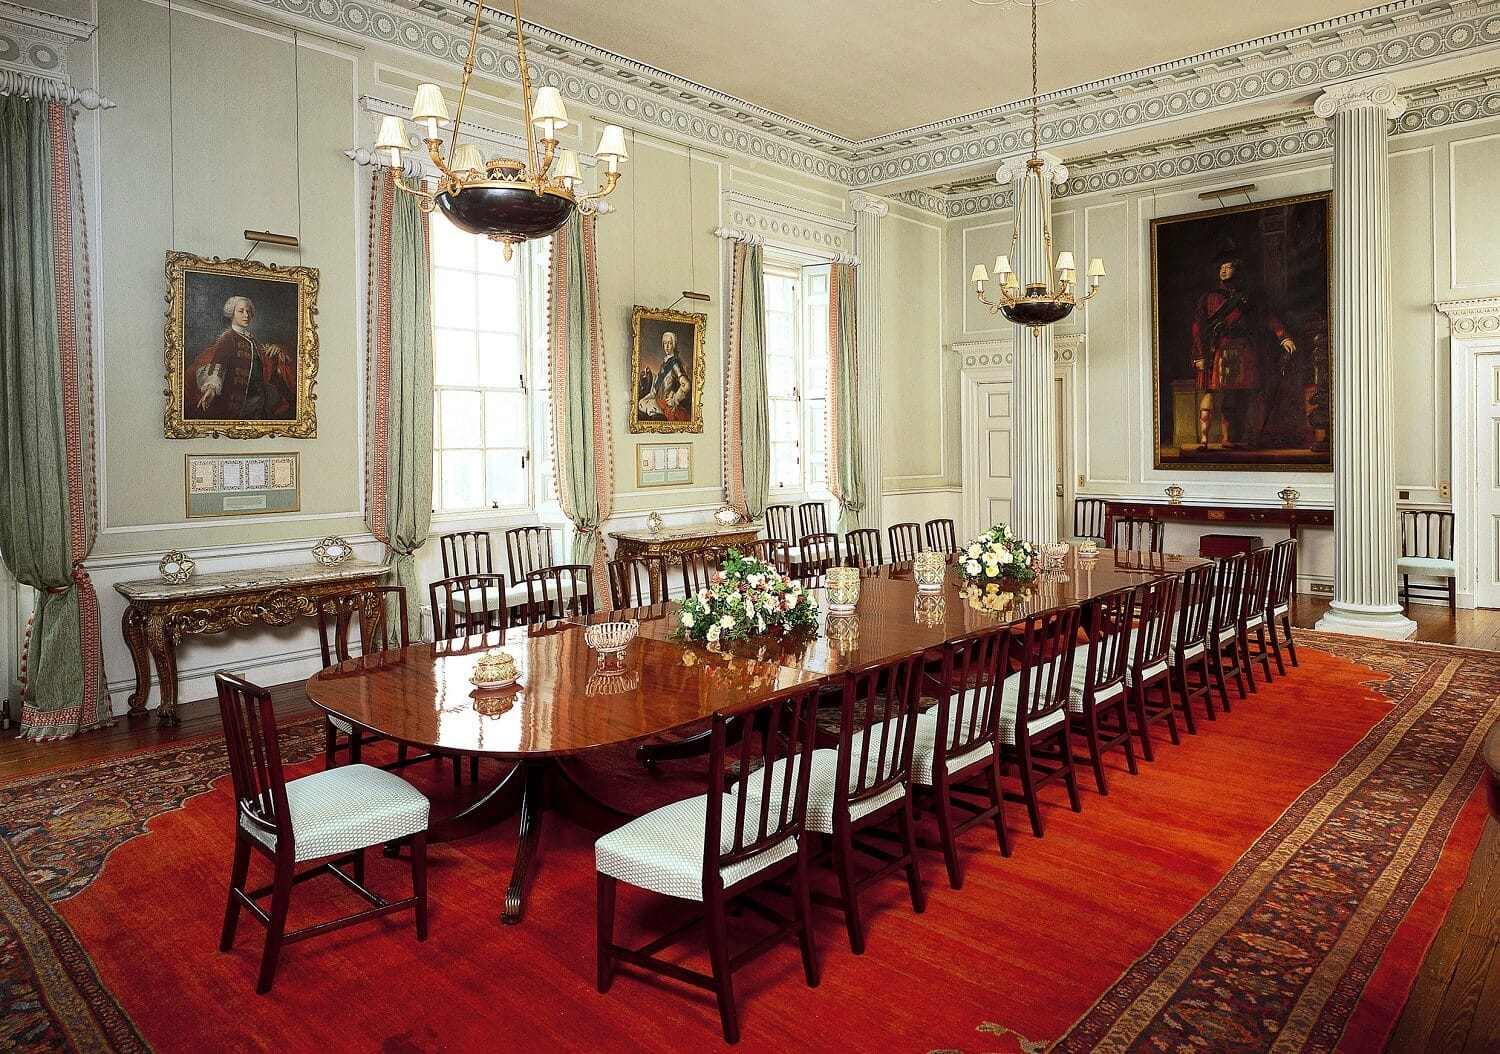 Neat To See Where The Royal Family Dines!   Image Credit: Royal Collection  Trust